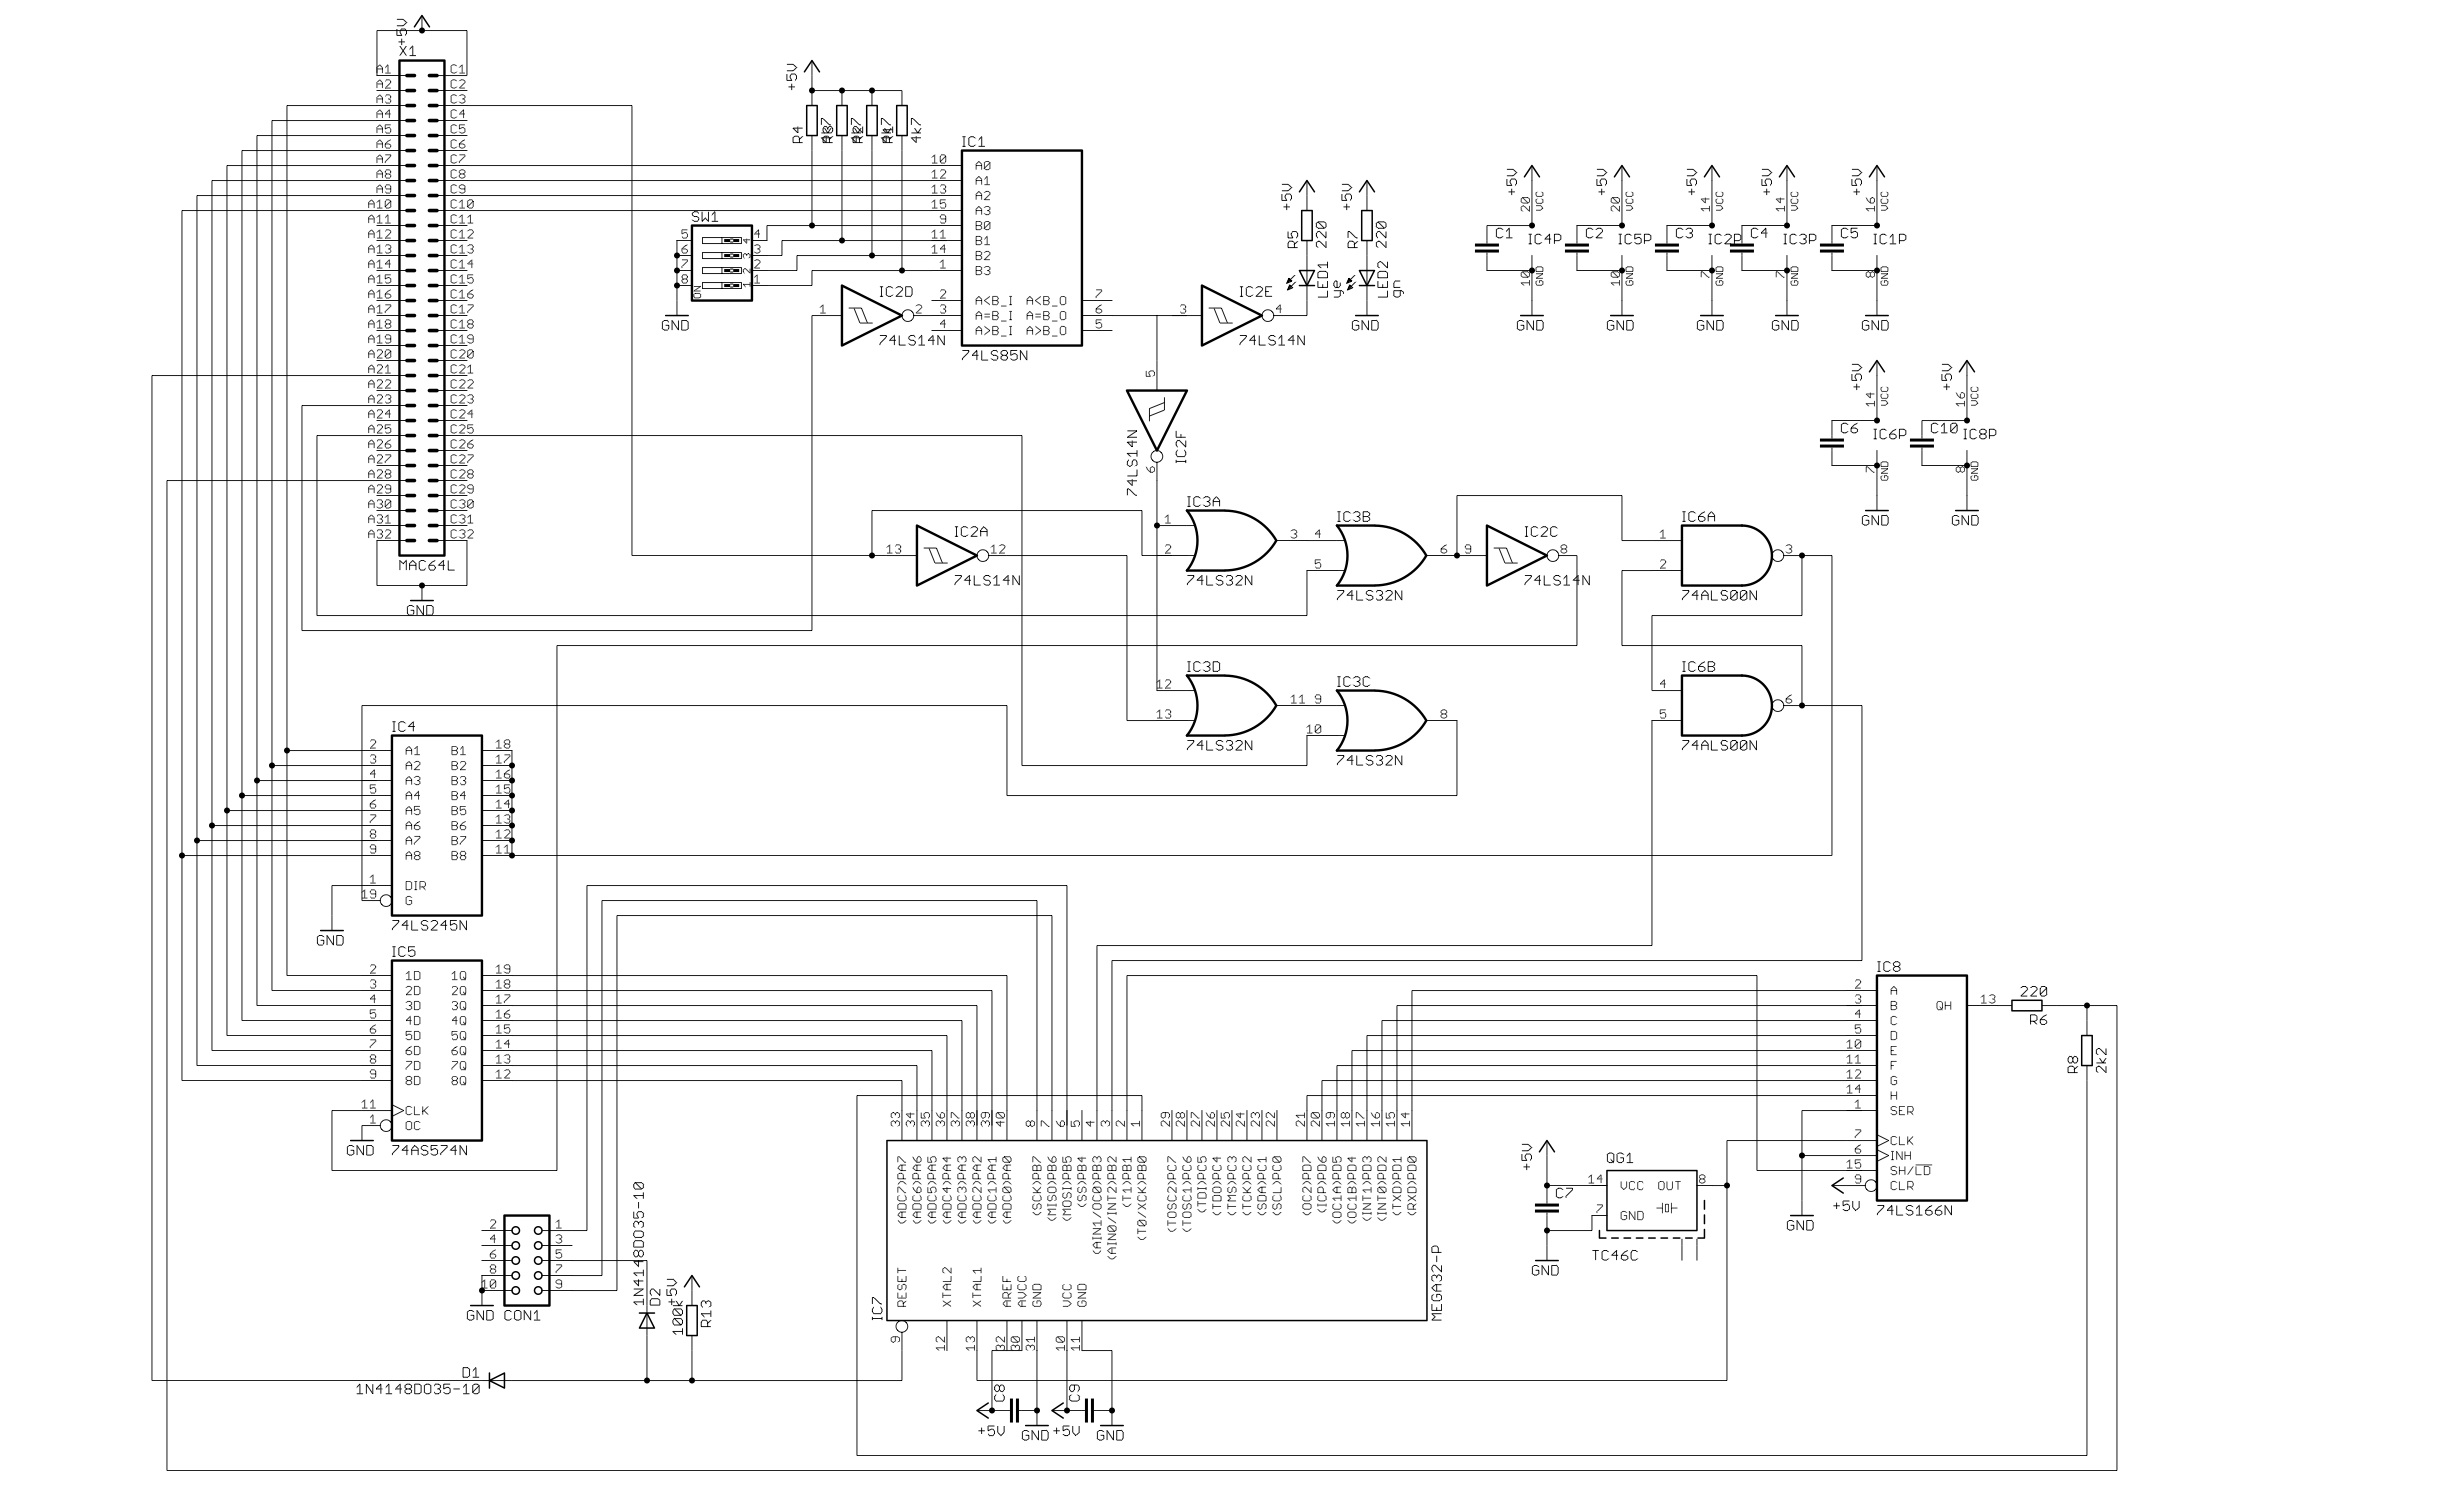 An Avr Based Video Controller Parts Of Generator Circuit Diagram Buy The Picture On Left Shows Schematic For In Upper 64 Pin Bus Connector Z80 Backplane Can Be Seen